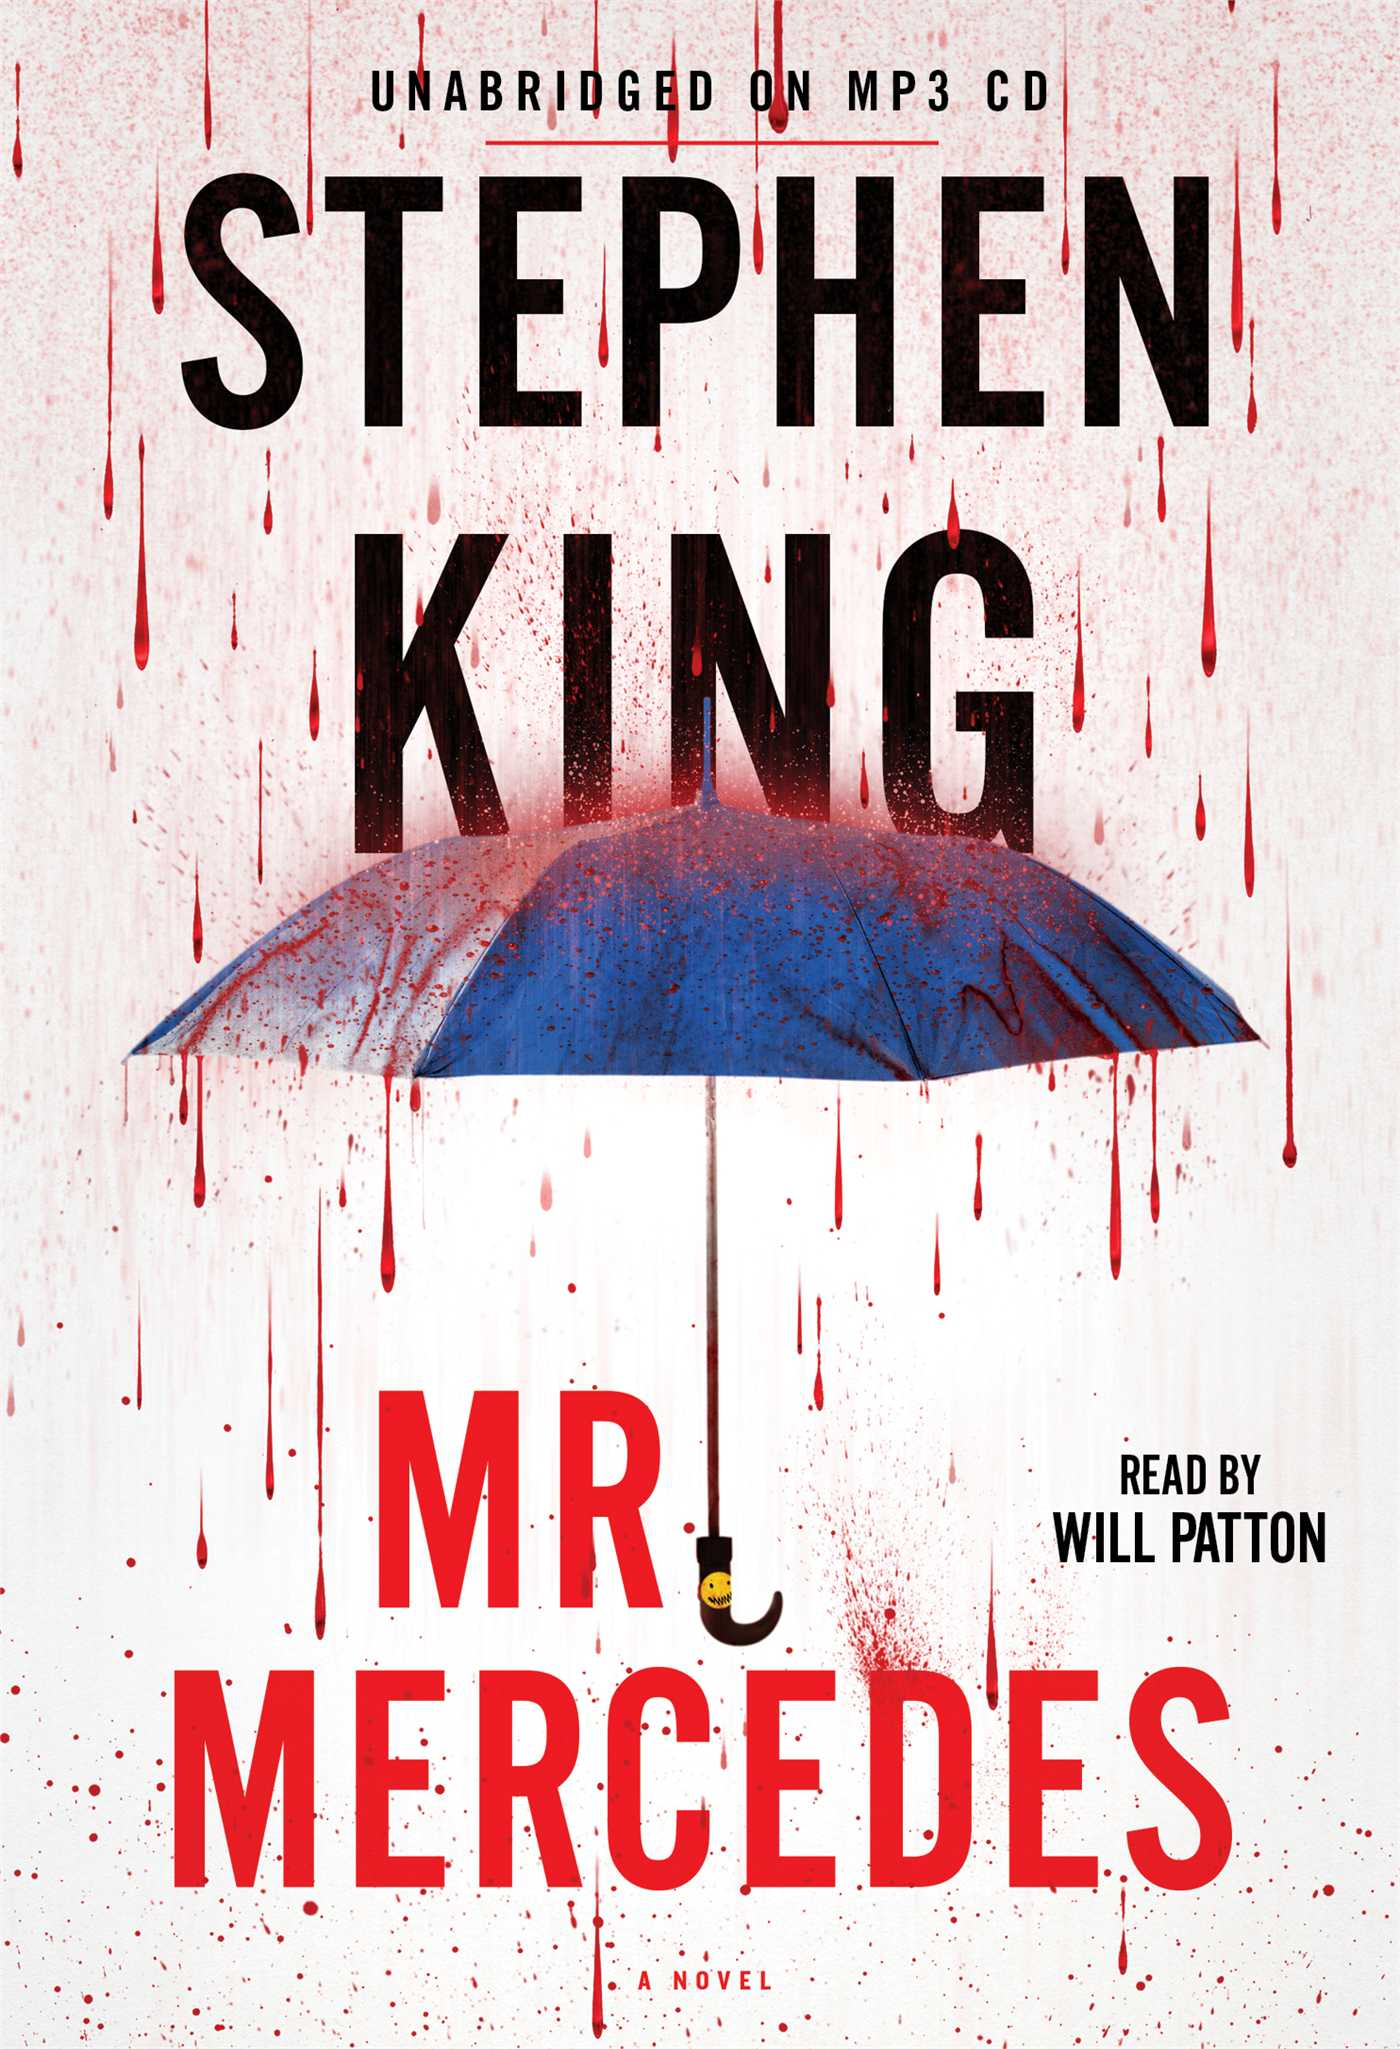 Mr-mercedes-9781442371347_hr